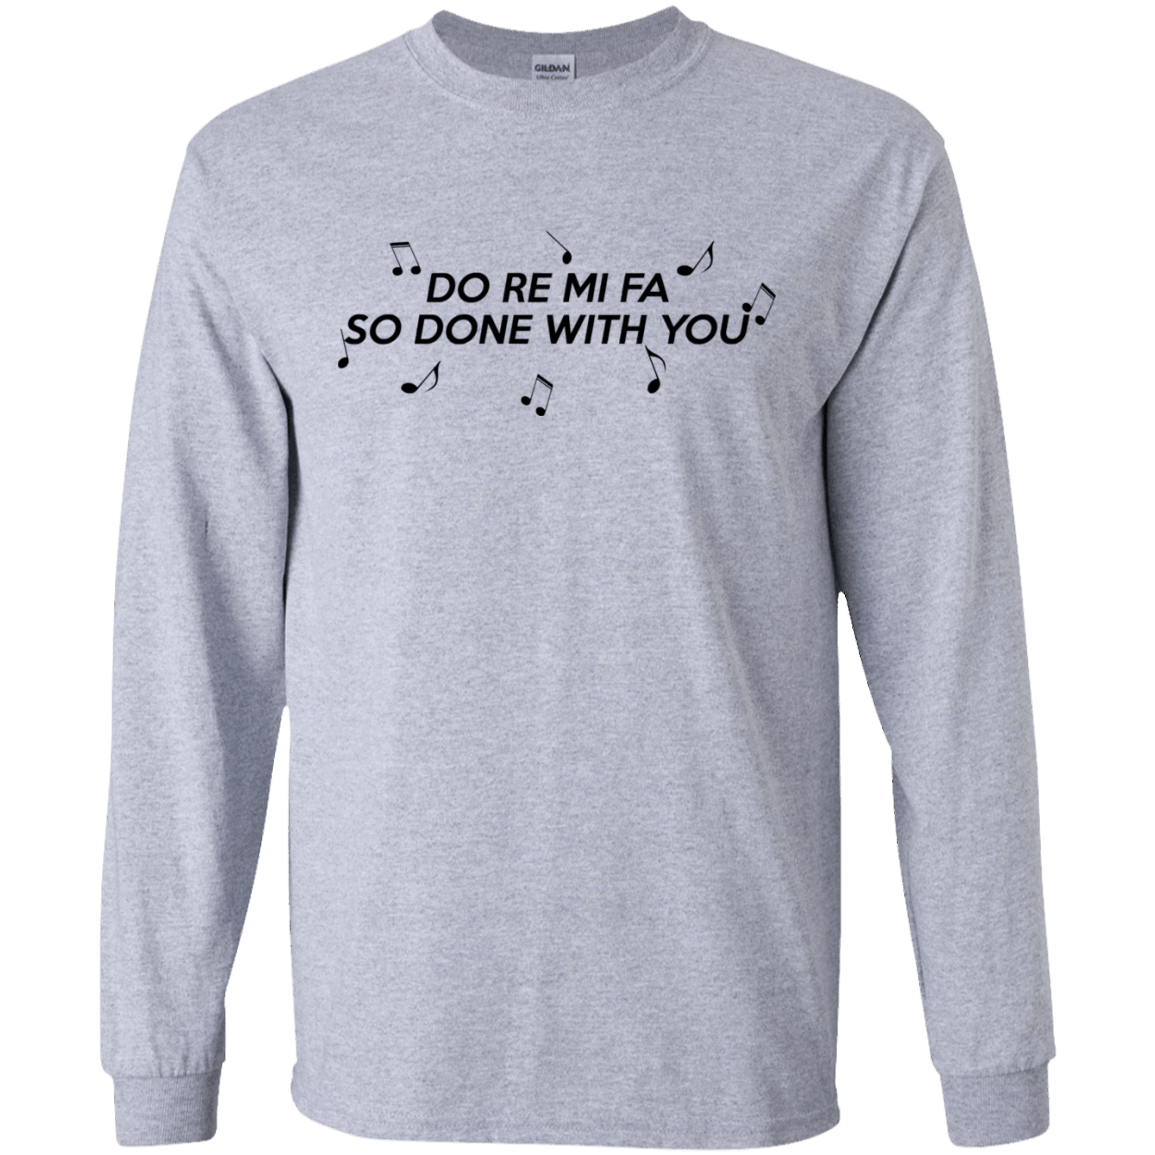 Do Re Mi Fa So Done With You 30-188-71995120-335 - Tee Ript